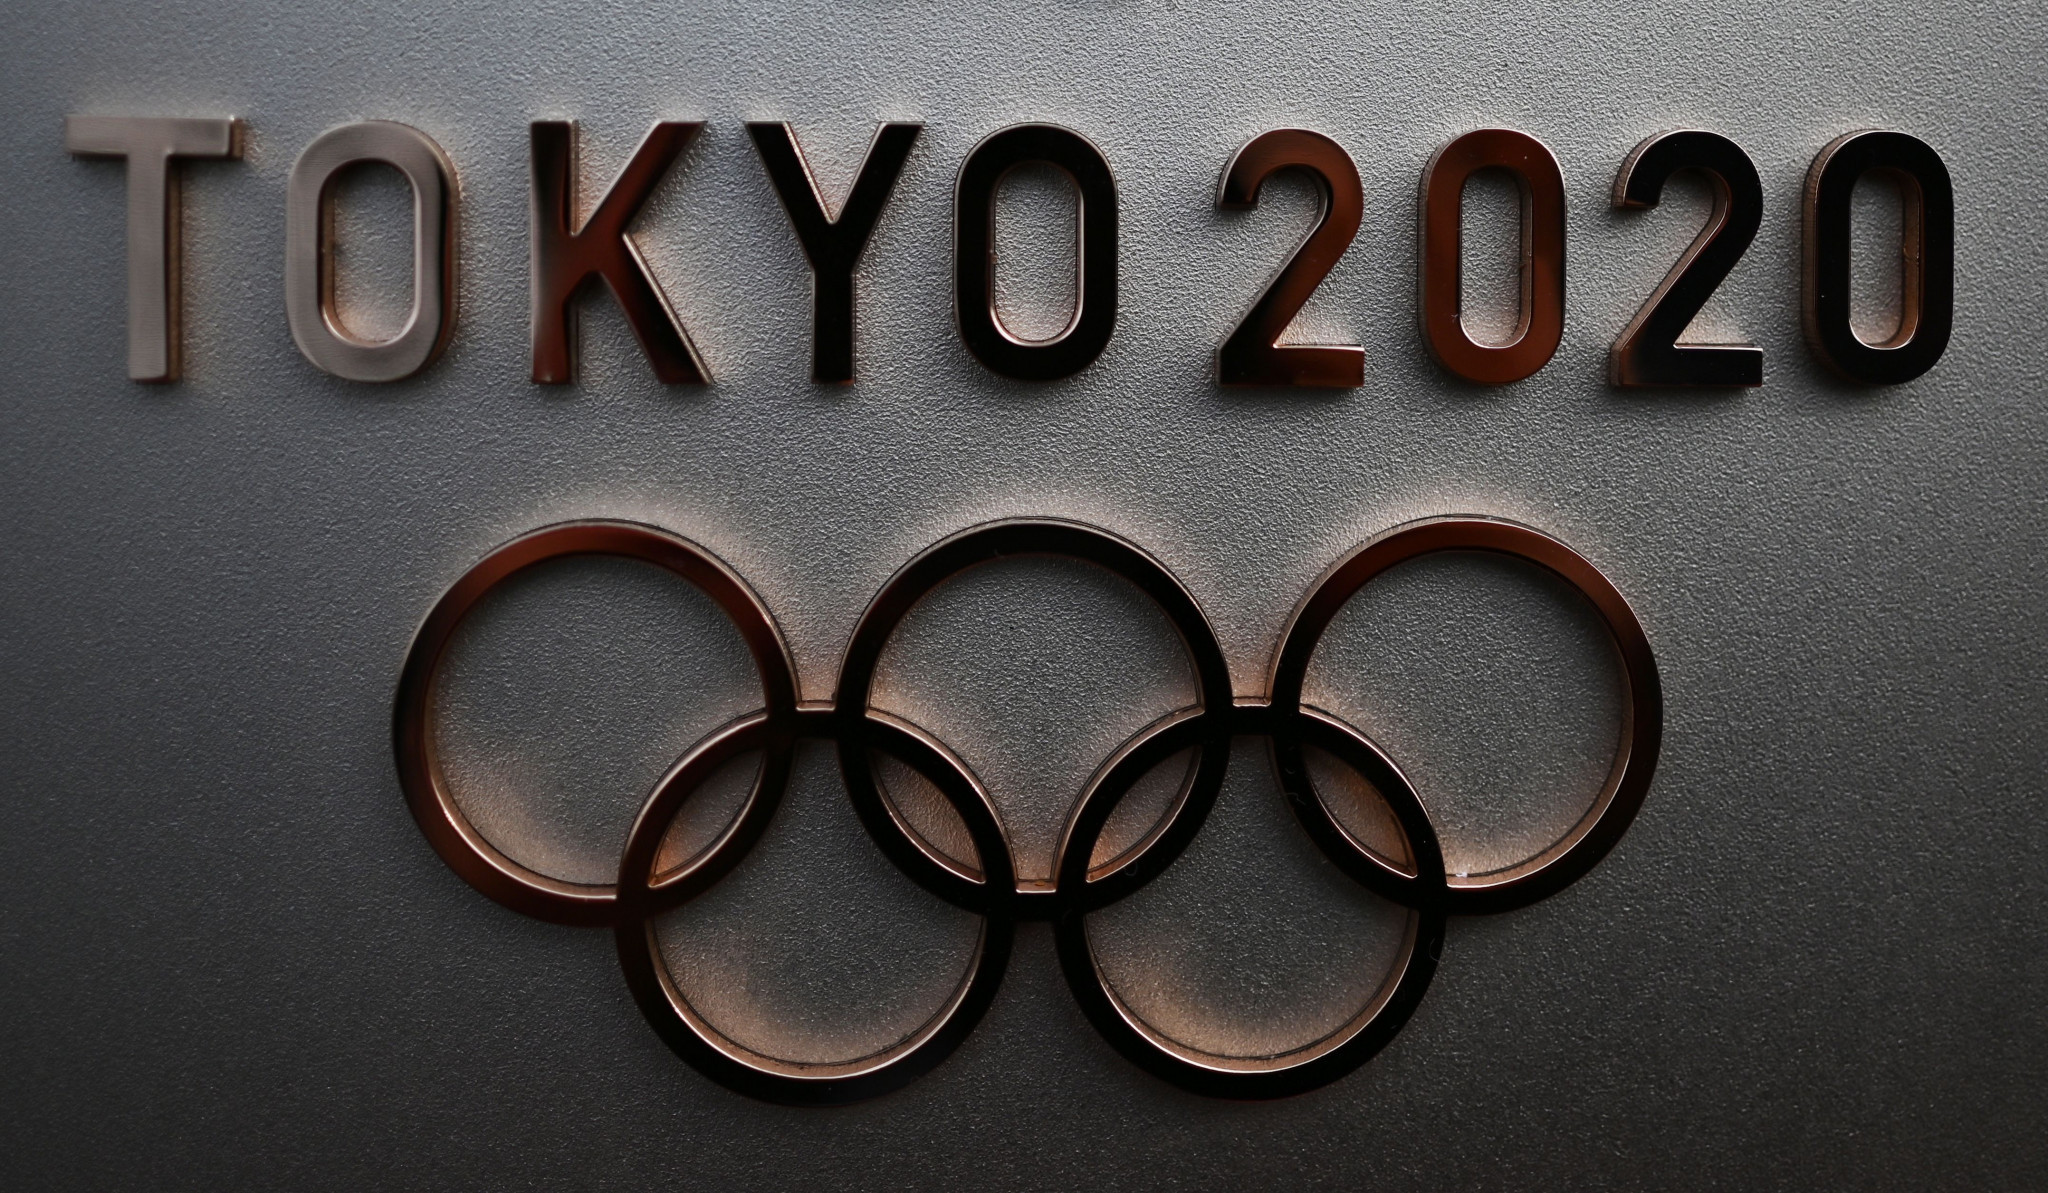 Organisers of the Tokyo 2020 Olympic Games are set to announce its motto tomorrow ©Getty Images